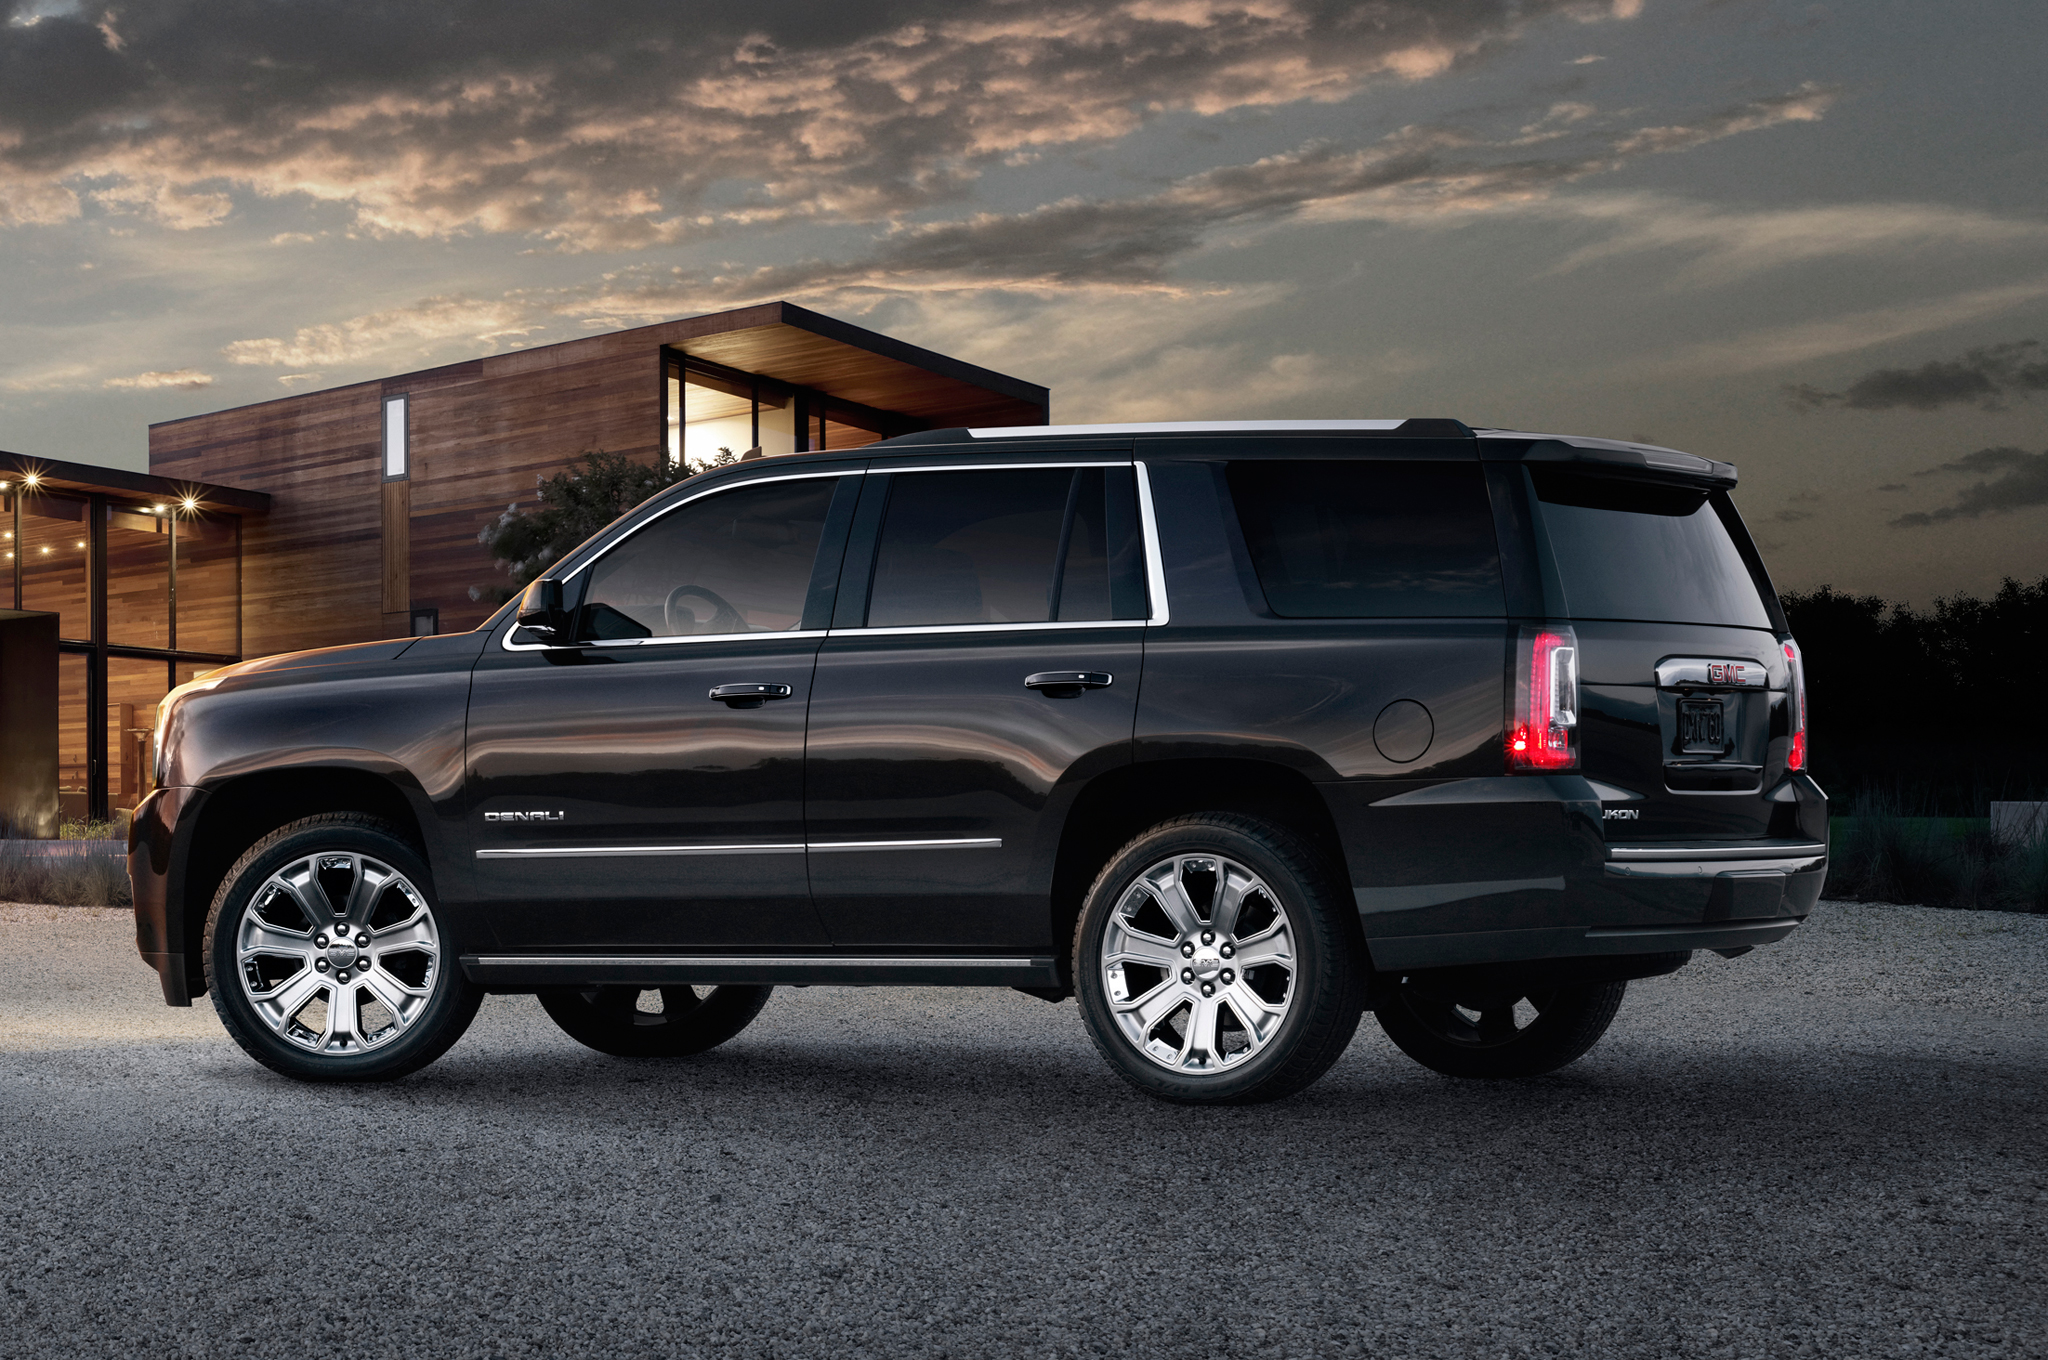 Download Chevrolet Tahoe 2015 8